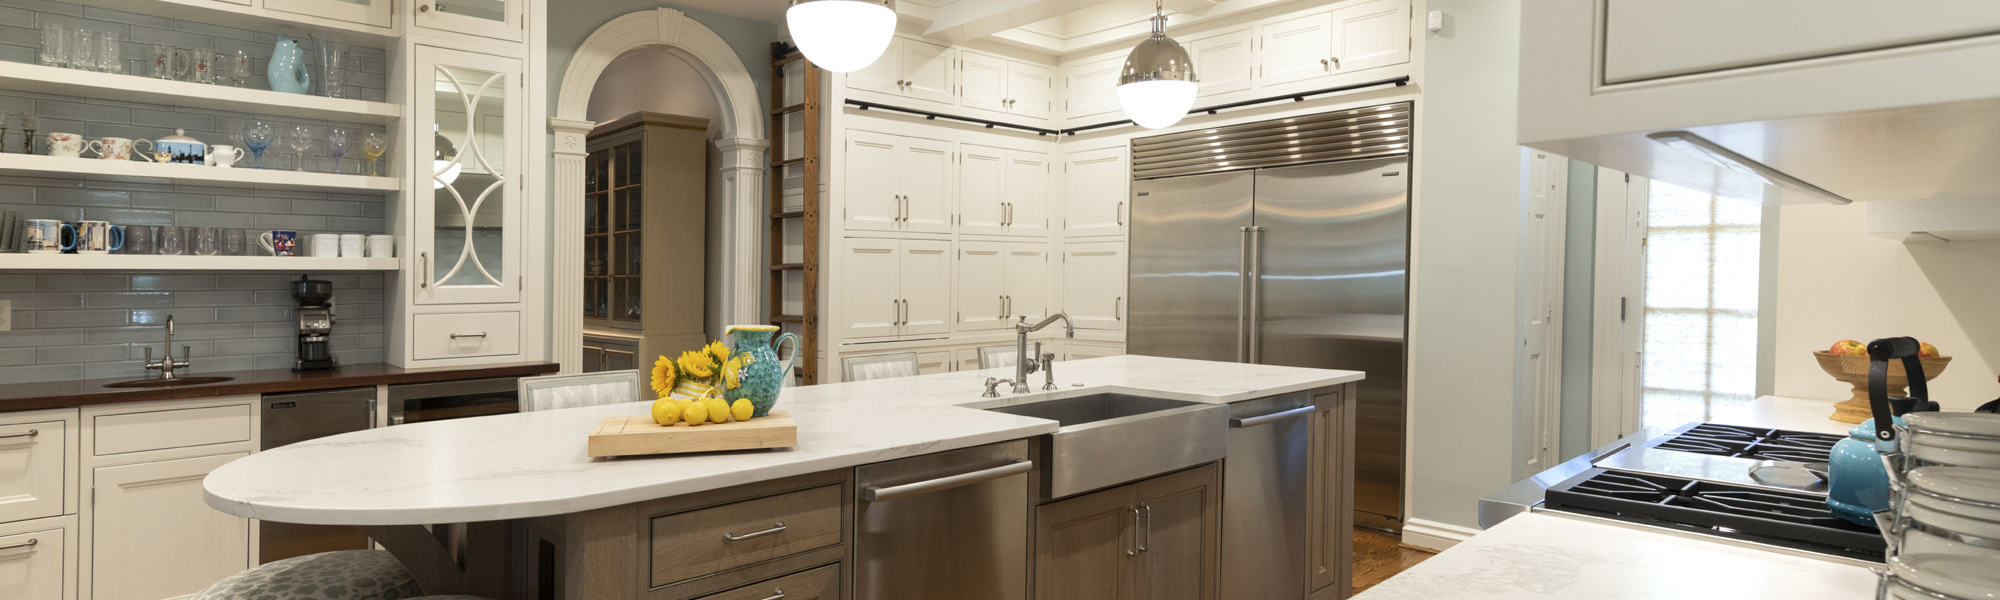 Phased Renovation in Chevy Chase, MD